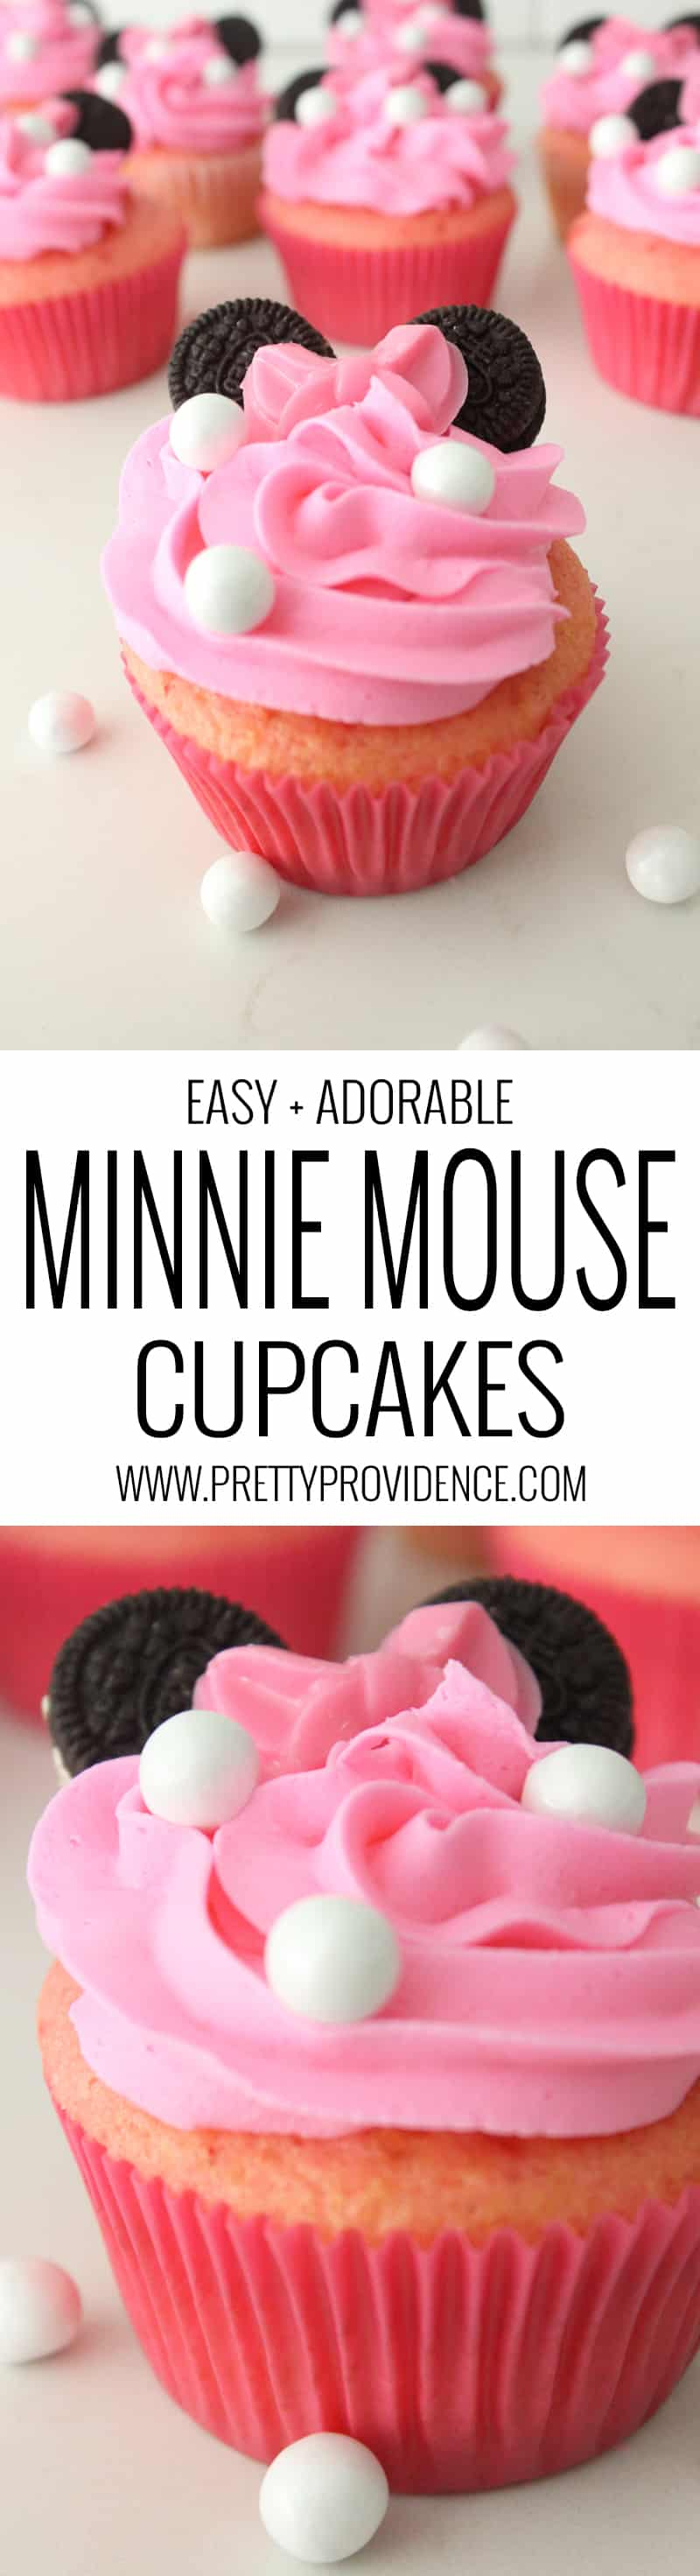 How amazing are these Minnie Mouse cupcakes?!! SUPER EASY to throw together, too!